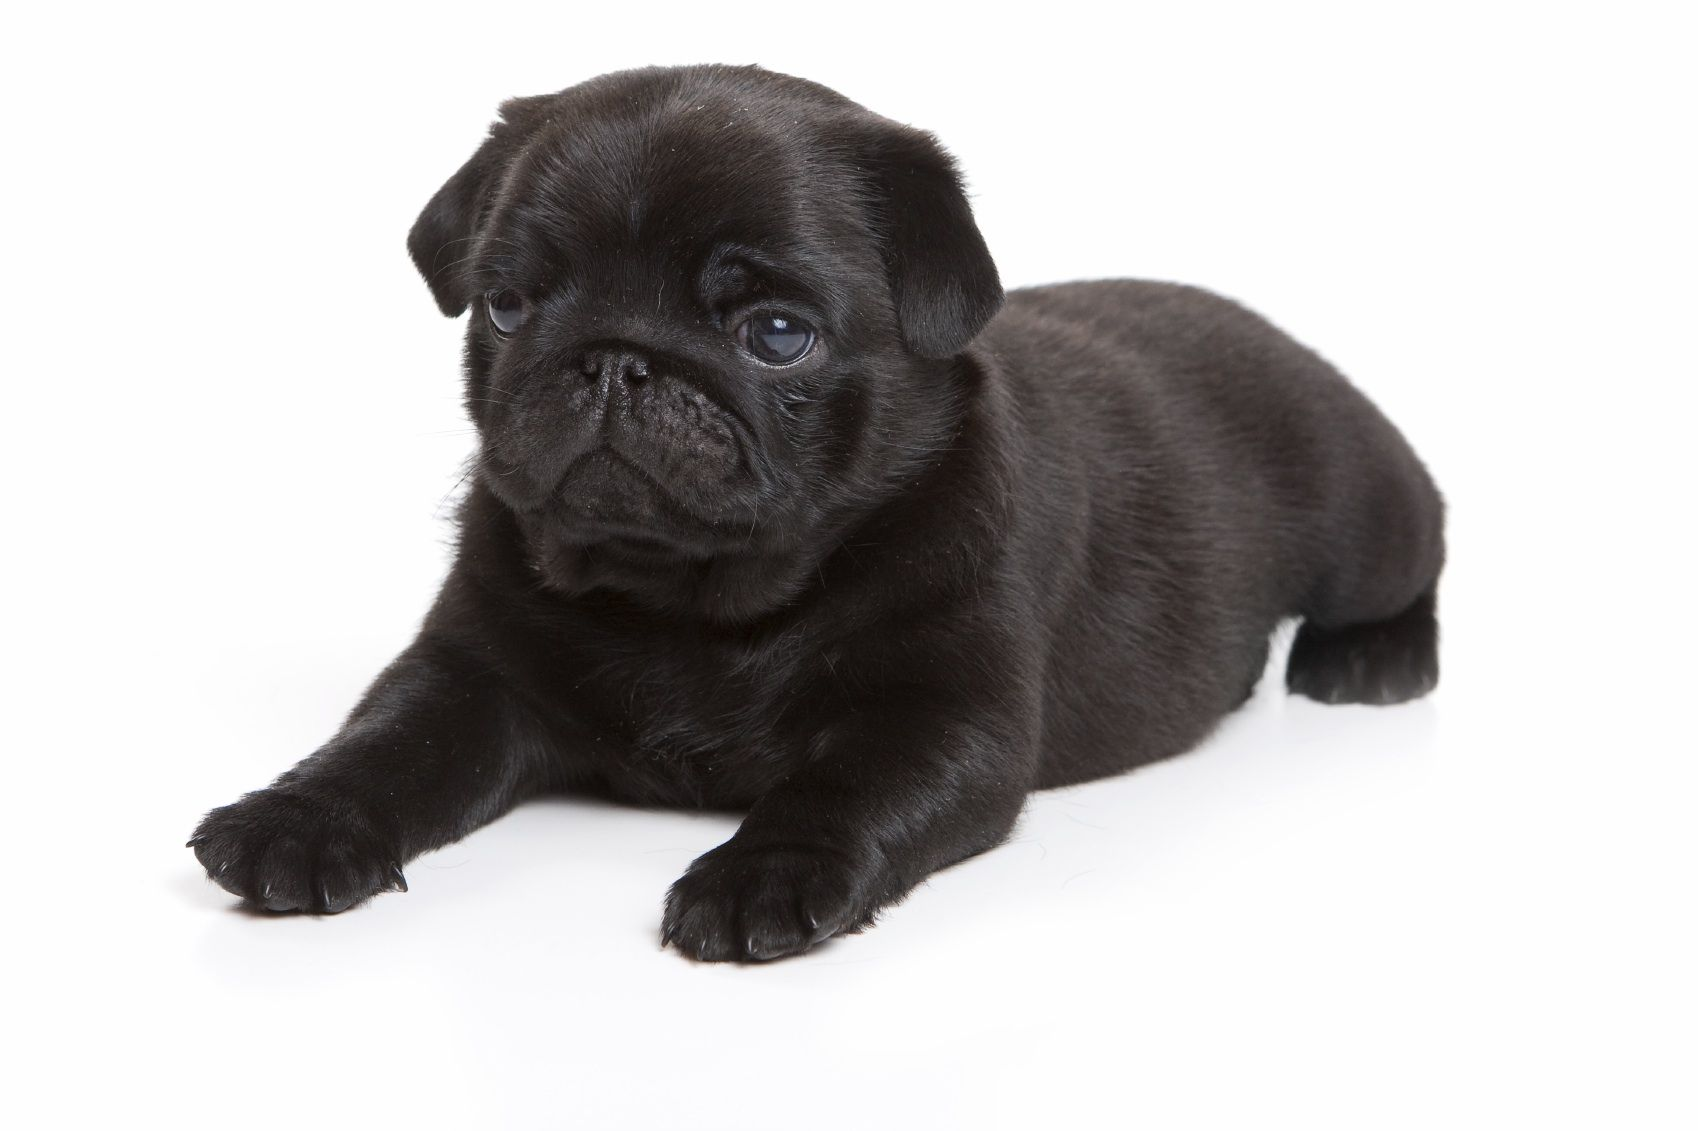 This Would Be Why I Want A Black Pug